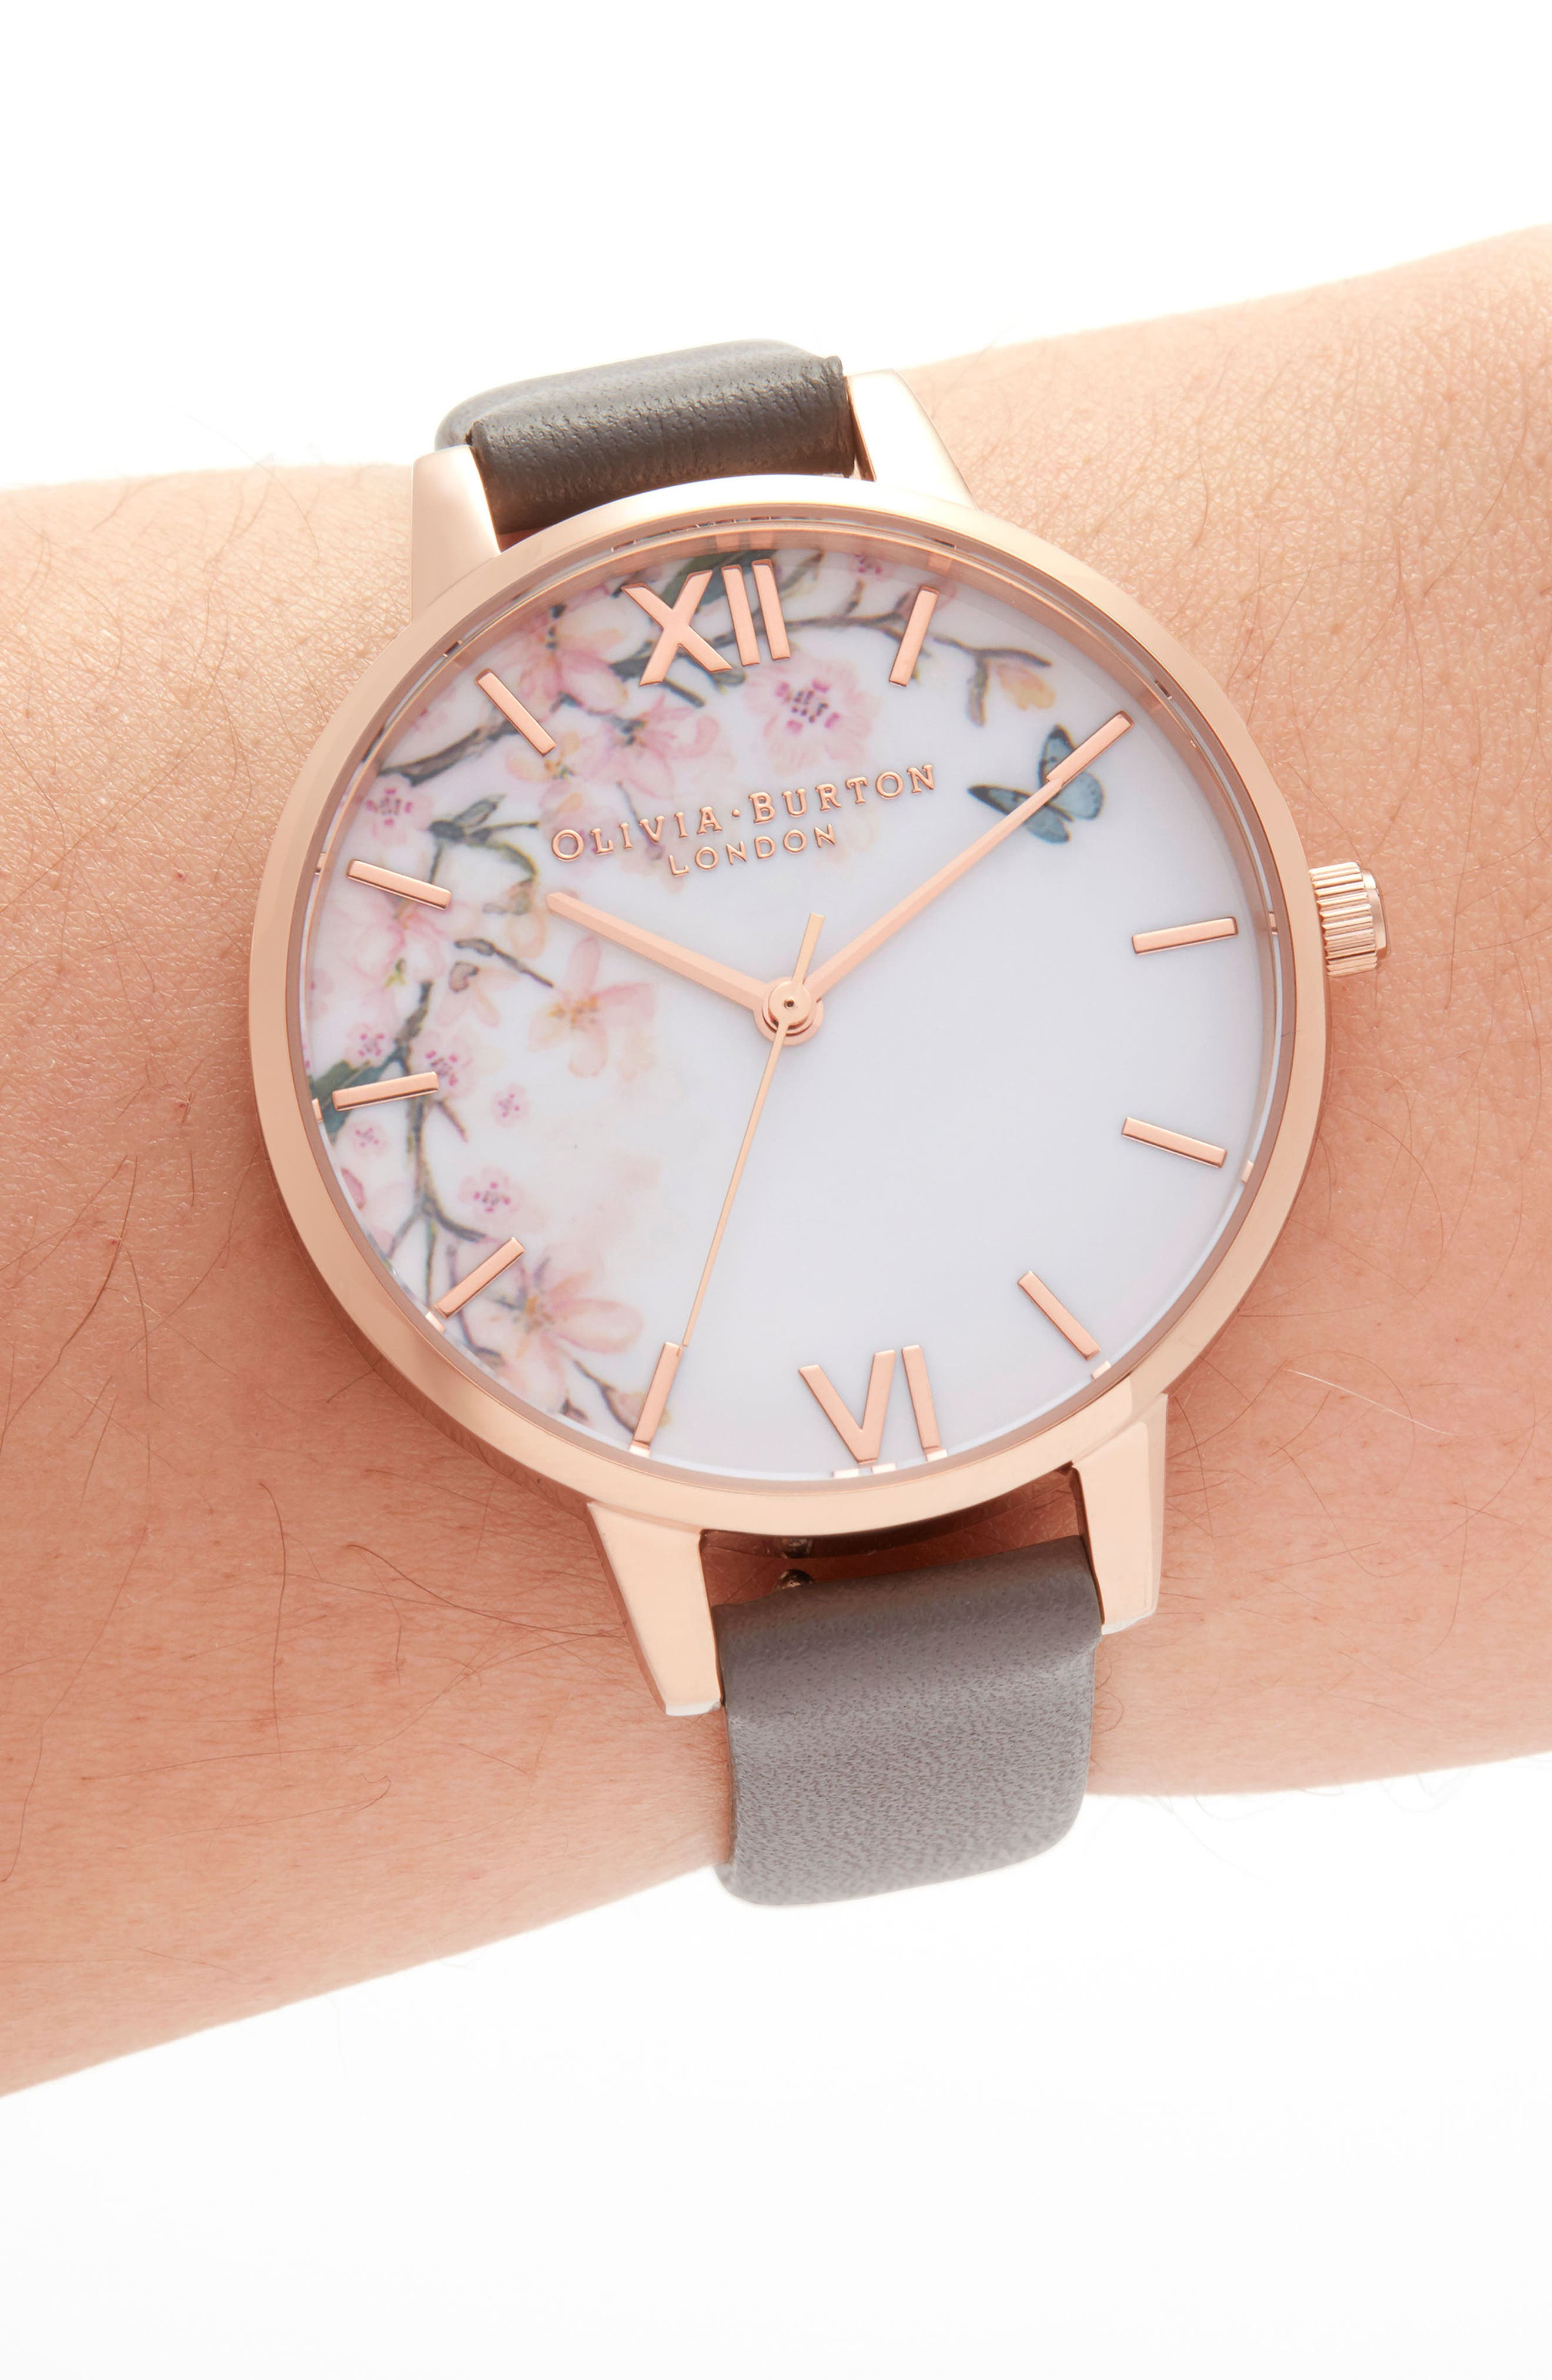 OLIVIA BURTON, Pretty Blossom Leather Strap Watch, 34mm, Alternate thumbnail 2, color, GREY / WHITE/ ROSE GOLD